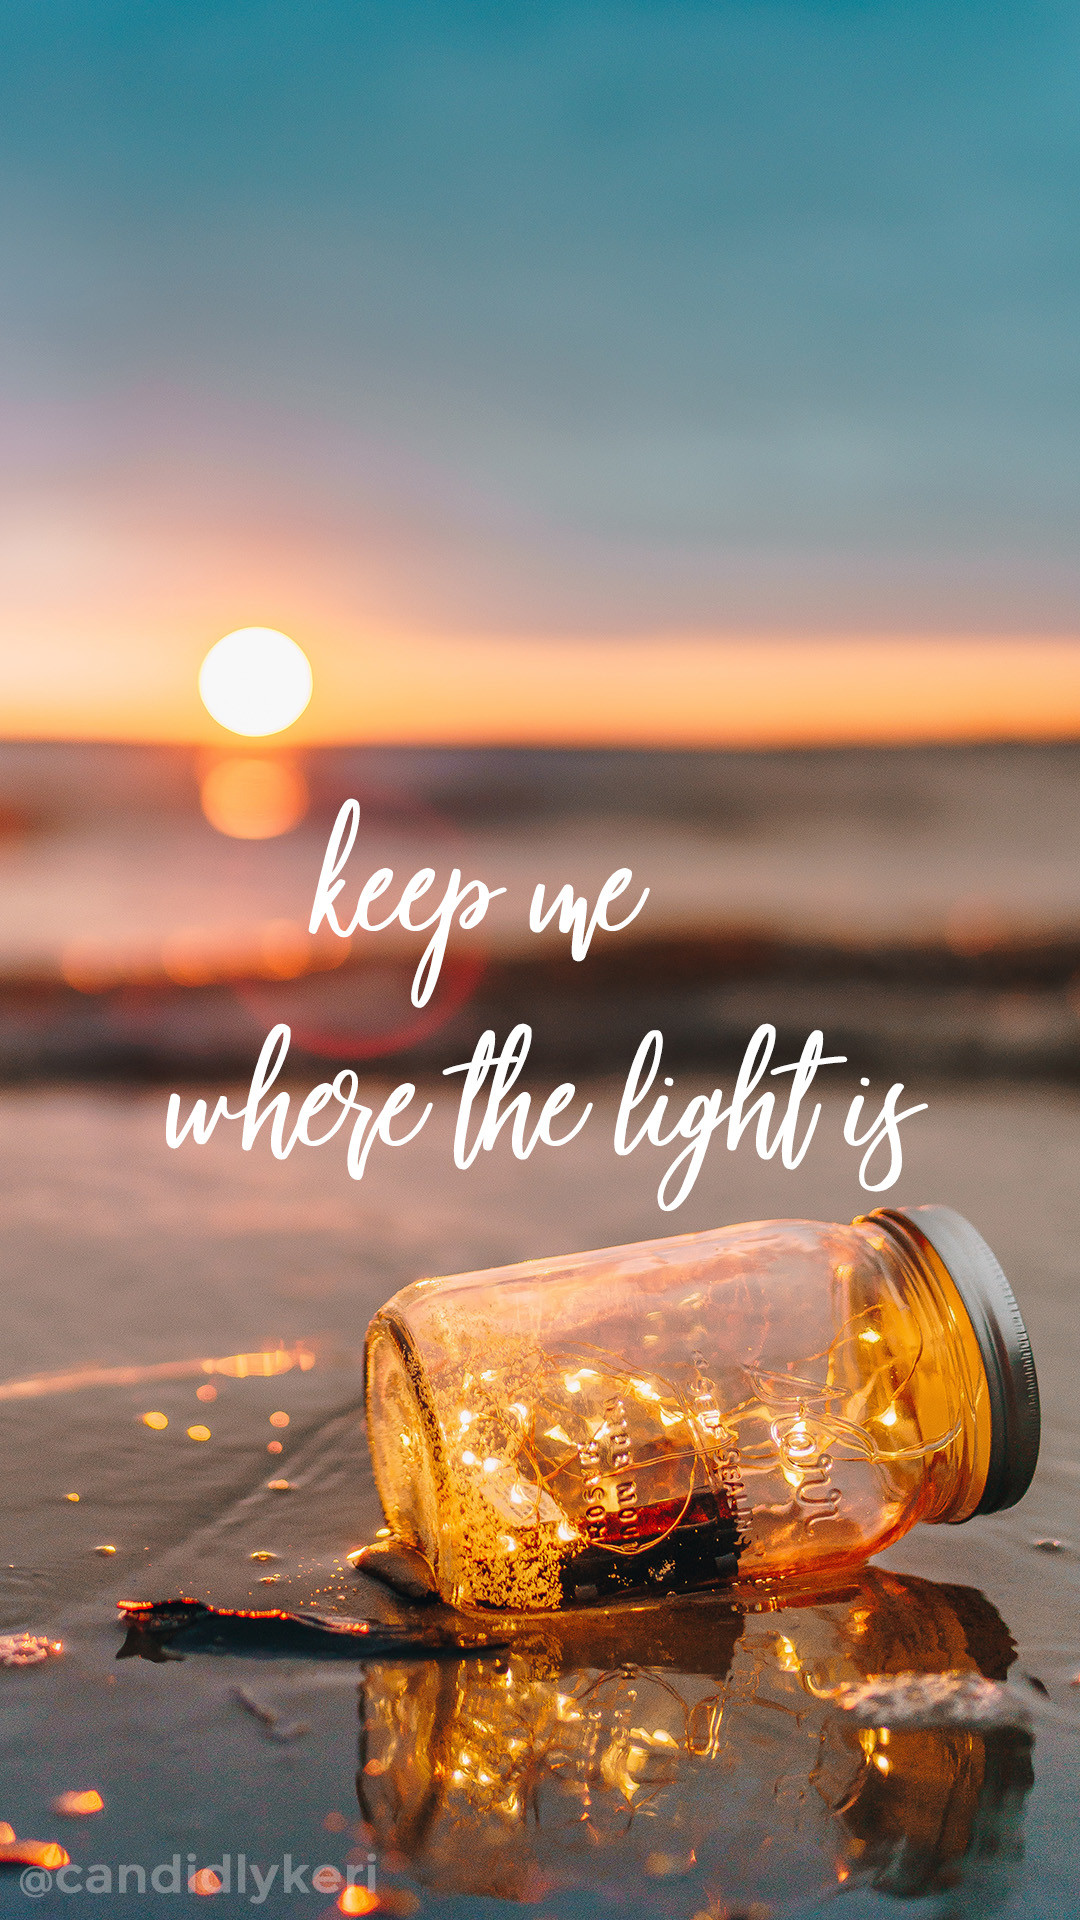 1080x1920 Keep me where the light is quote sunset mason jar wallpaper you can  download for free